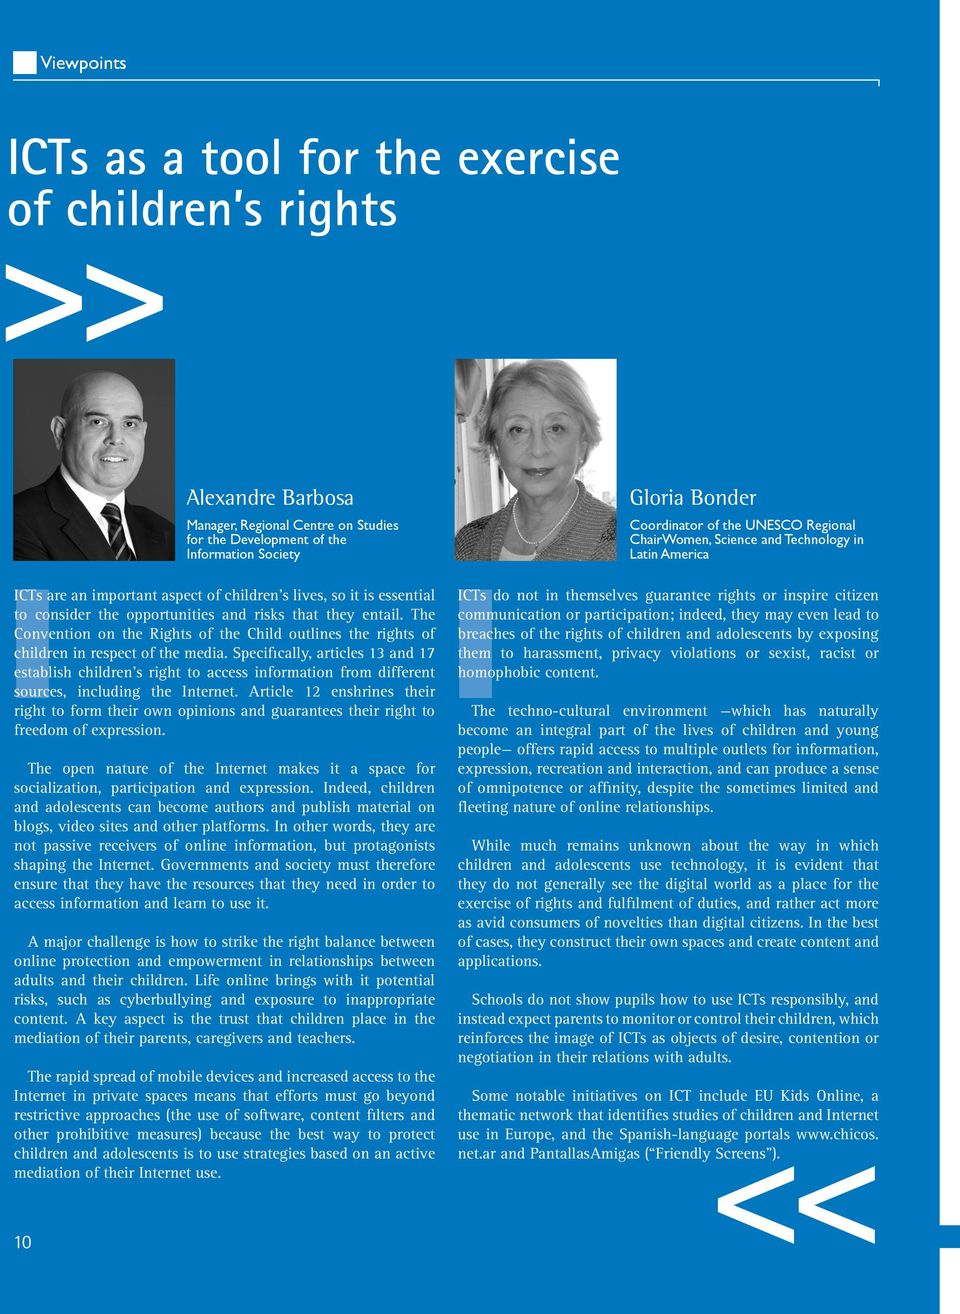 The Convention on the Rights of the Child outlines the rights of children in respect of the media.